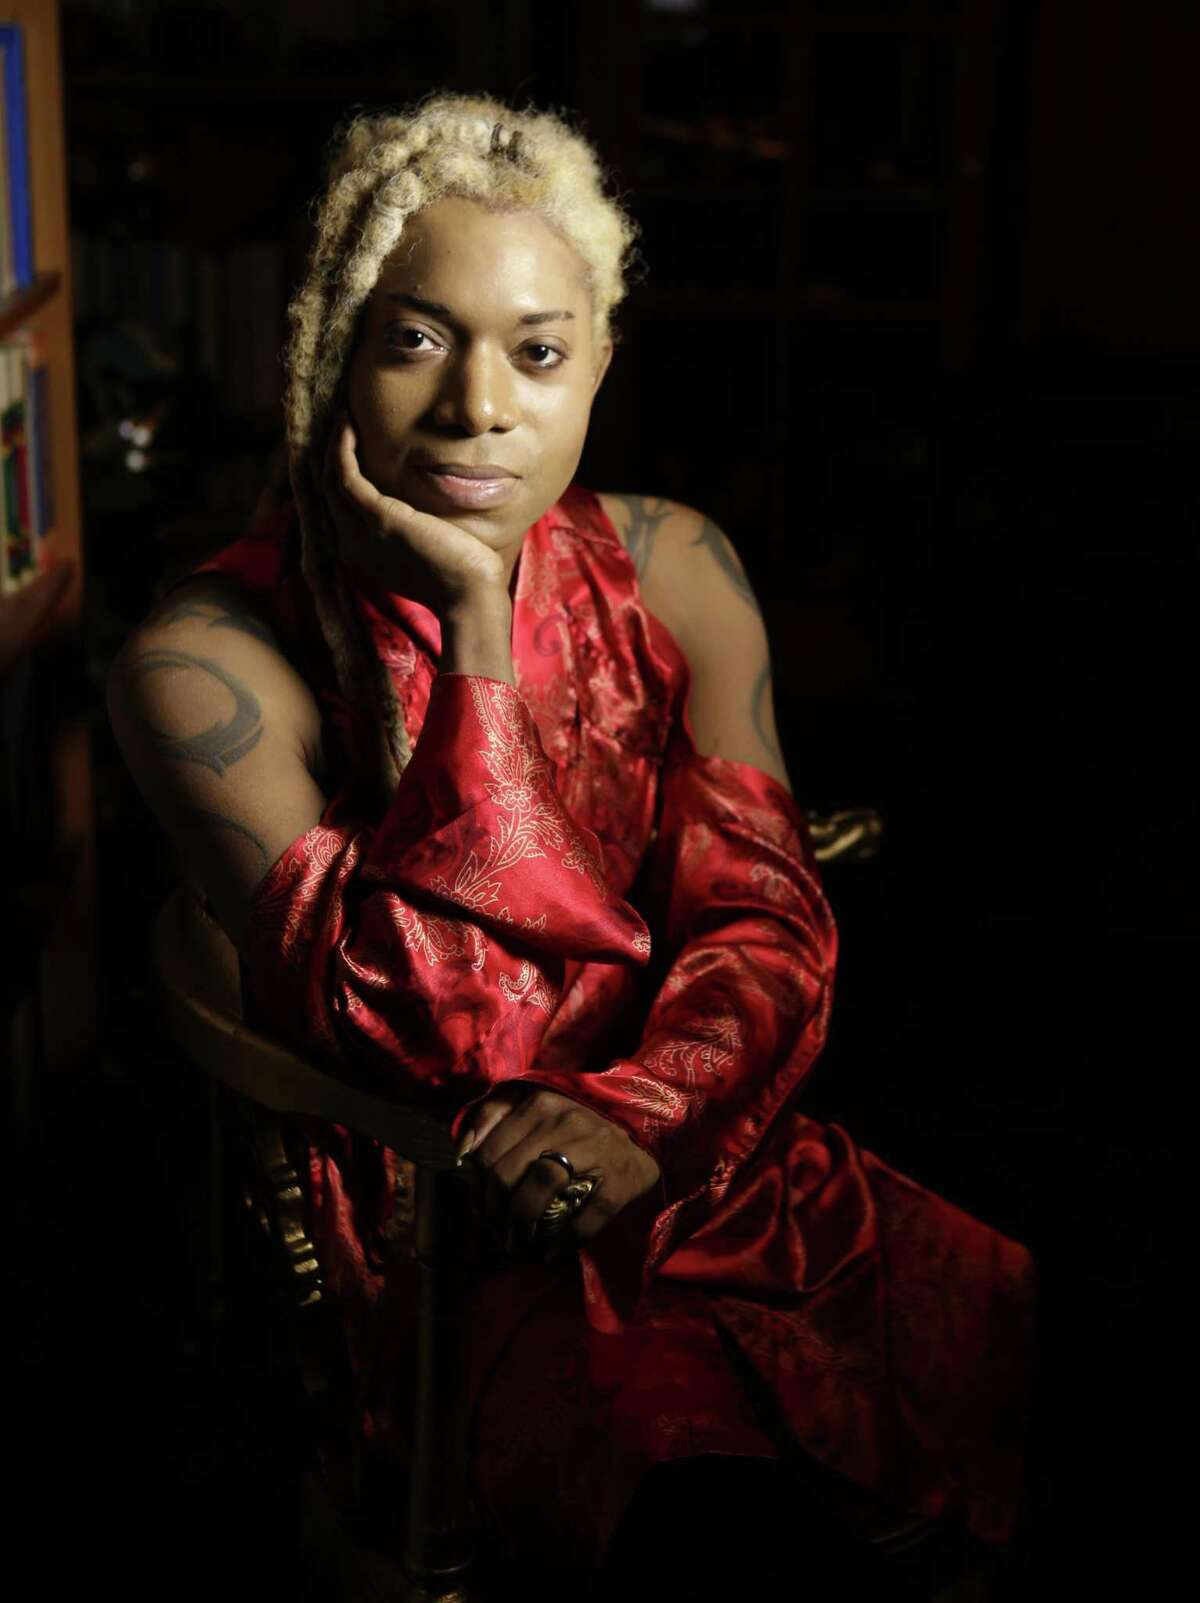 Tarik Rêver's health issues haven't stopped him from helping non-profit organizations who provide shelter and aid to Houston's transgender community.